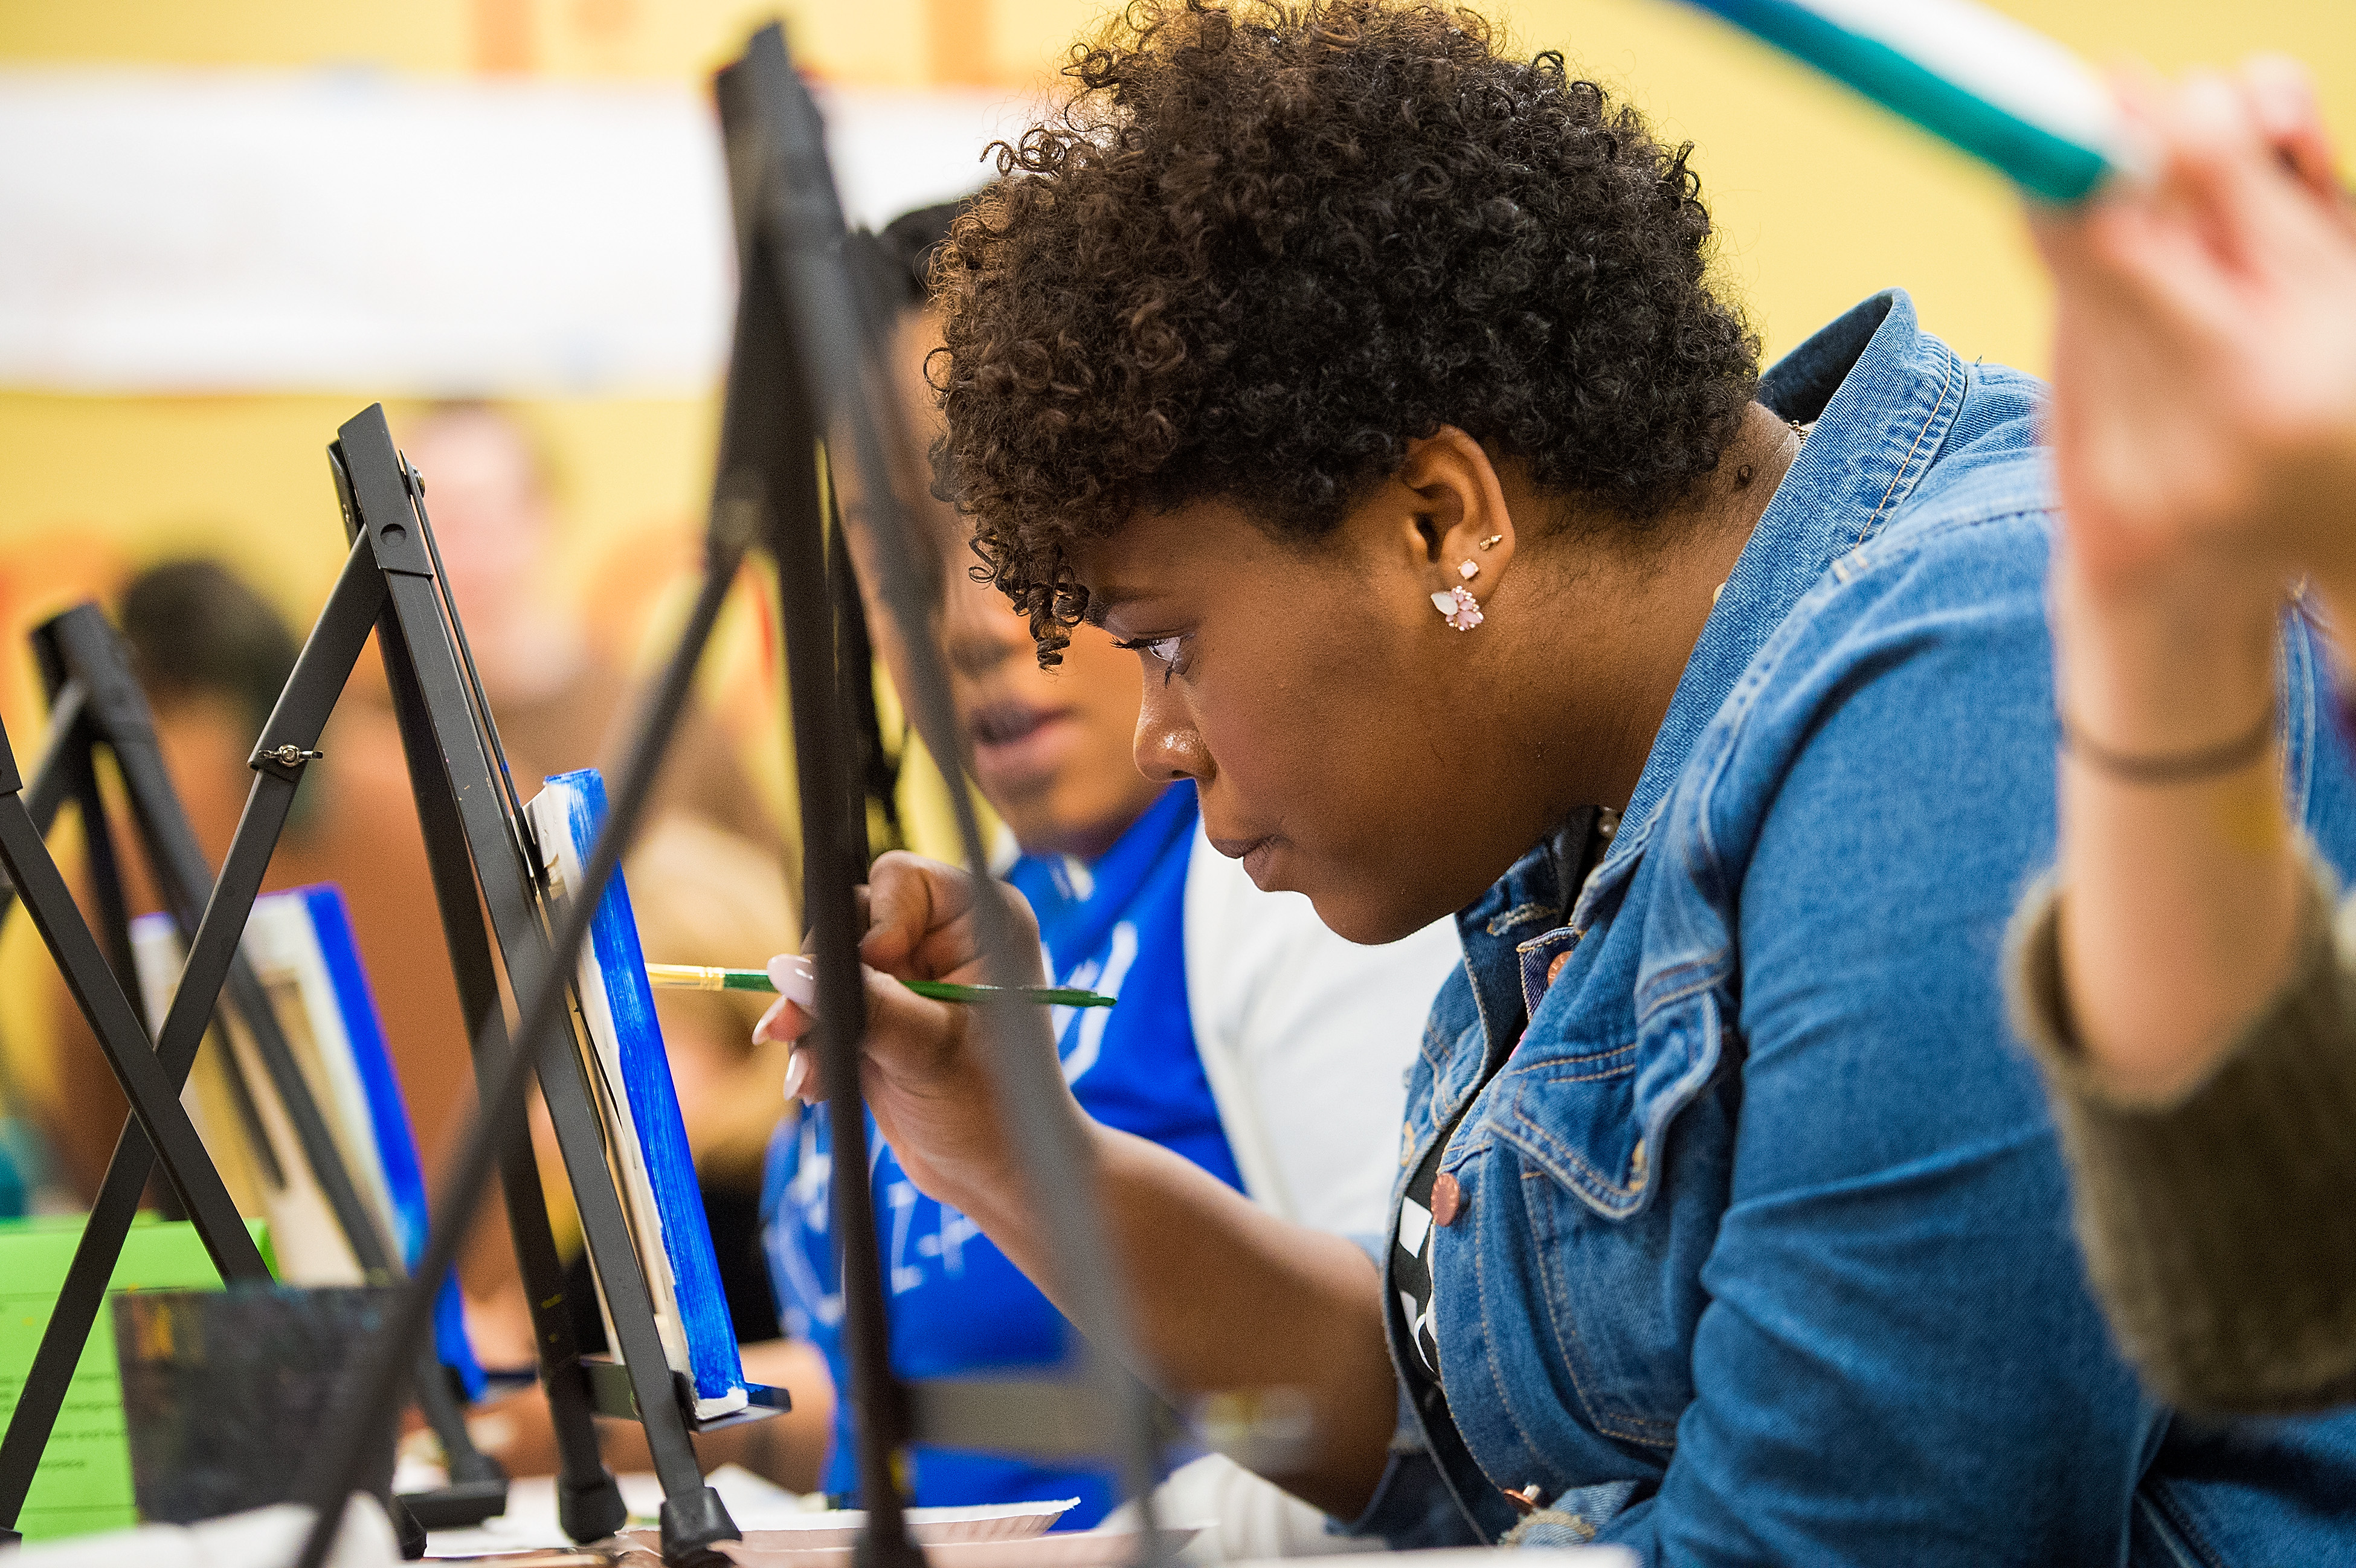 LeAnna Level takes part in an art project at Wheelhouse Studios in Memorial Union.